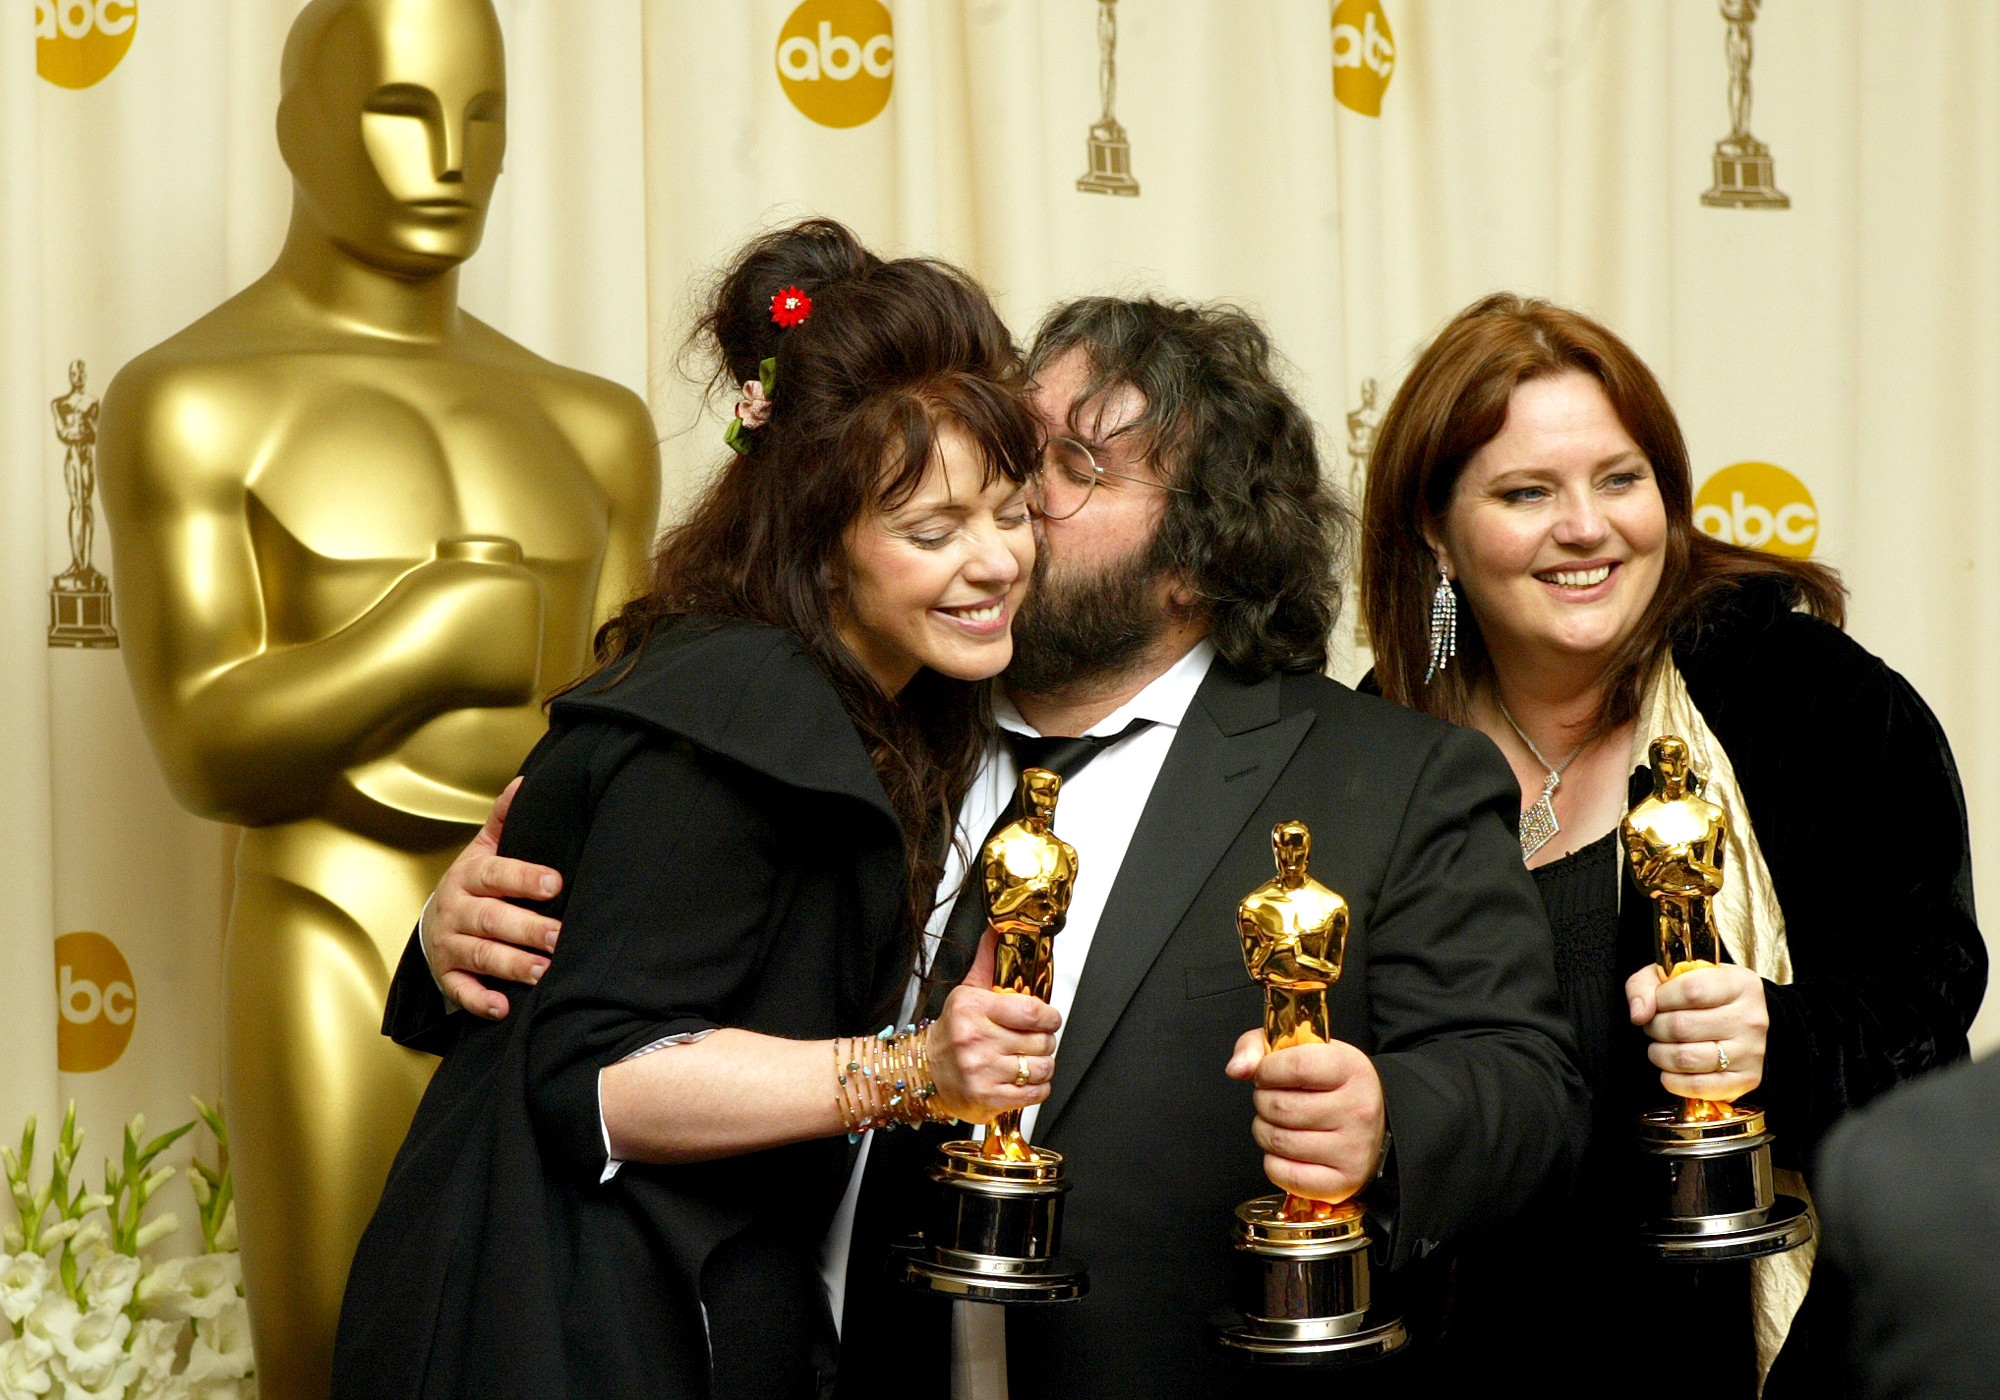 Lawrence K. Ho –– – Fran Walsh and Peter Jackson and Philippa Boyens with oscars for Best Adapted ScreenPlay Coverage of the 76th Annual Academy Awards at the Kodak Theatre in Hollywood, California on February 29, 2004.